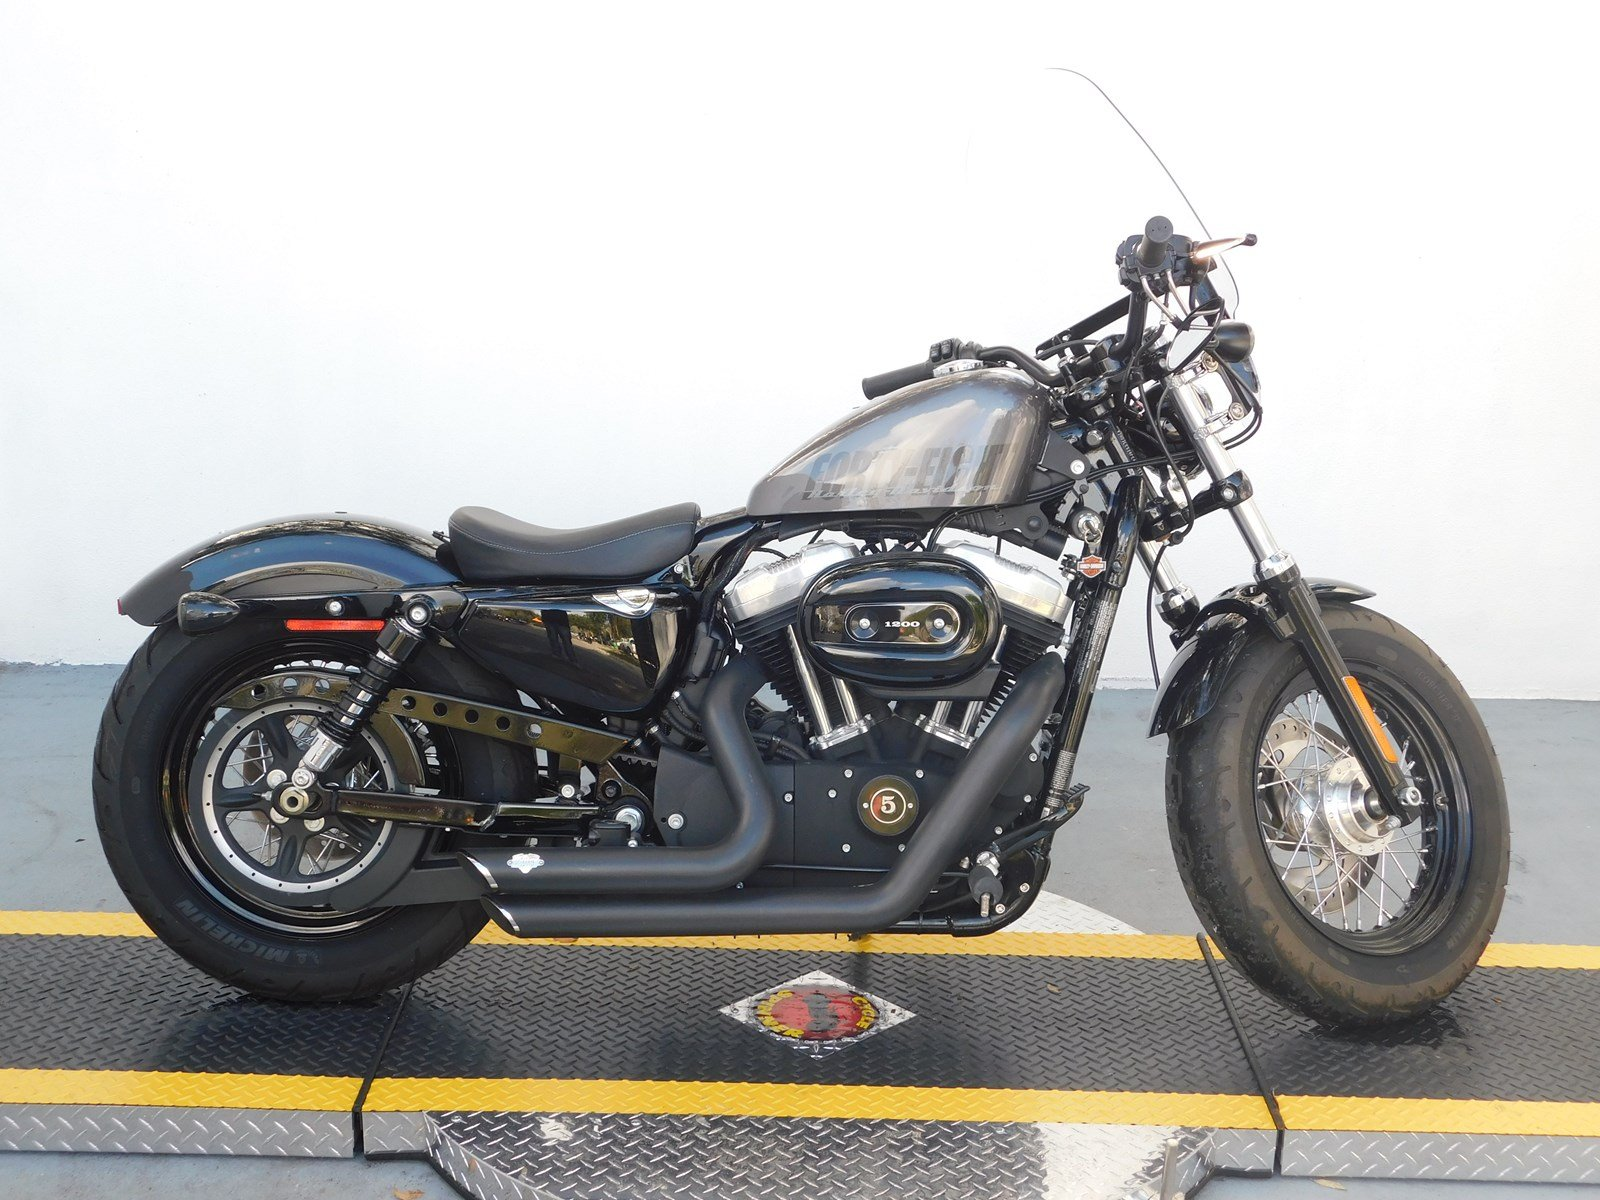 Pre-Owned 2015 Harley-Davidson Sportster Forty-Eight XL1200X